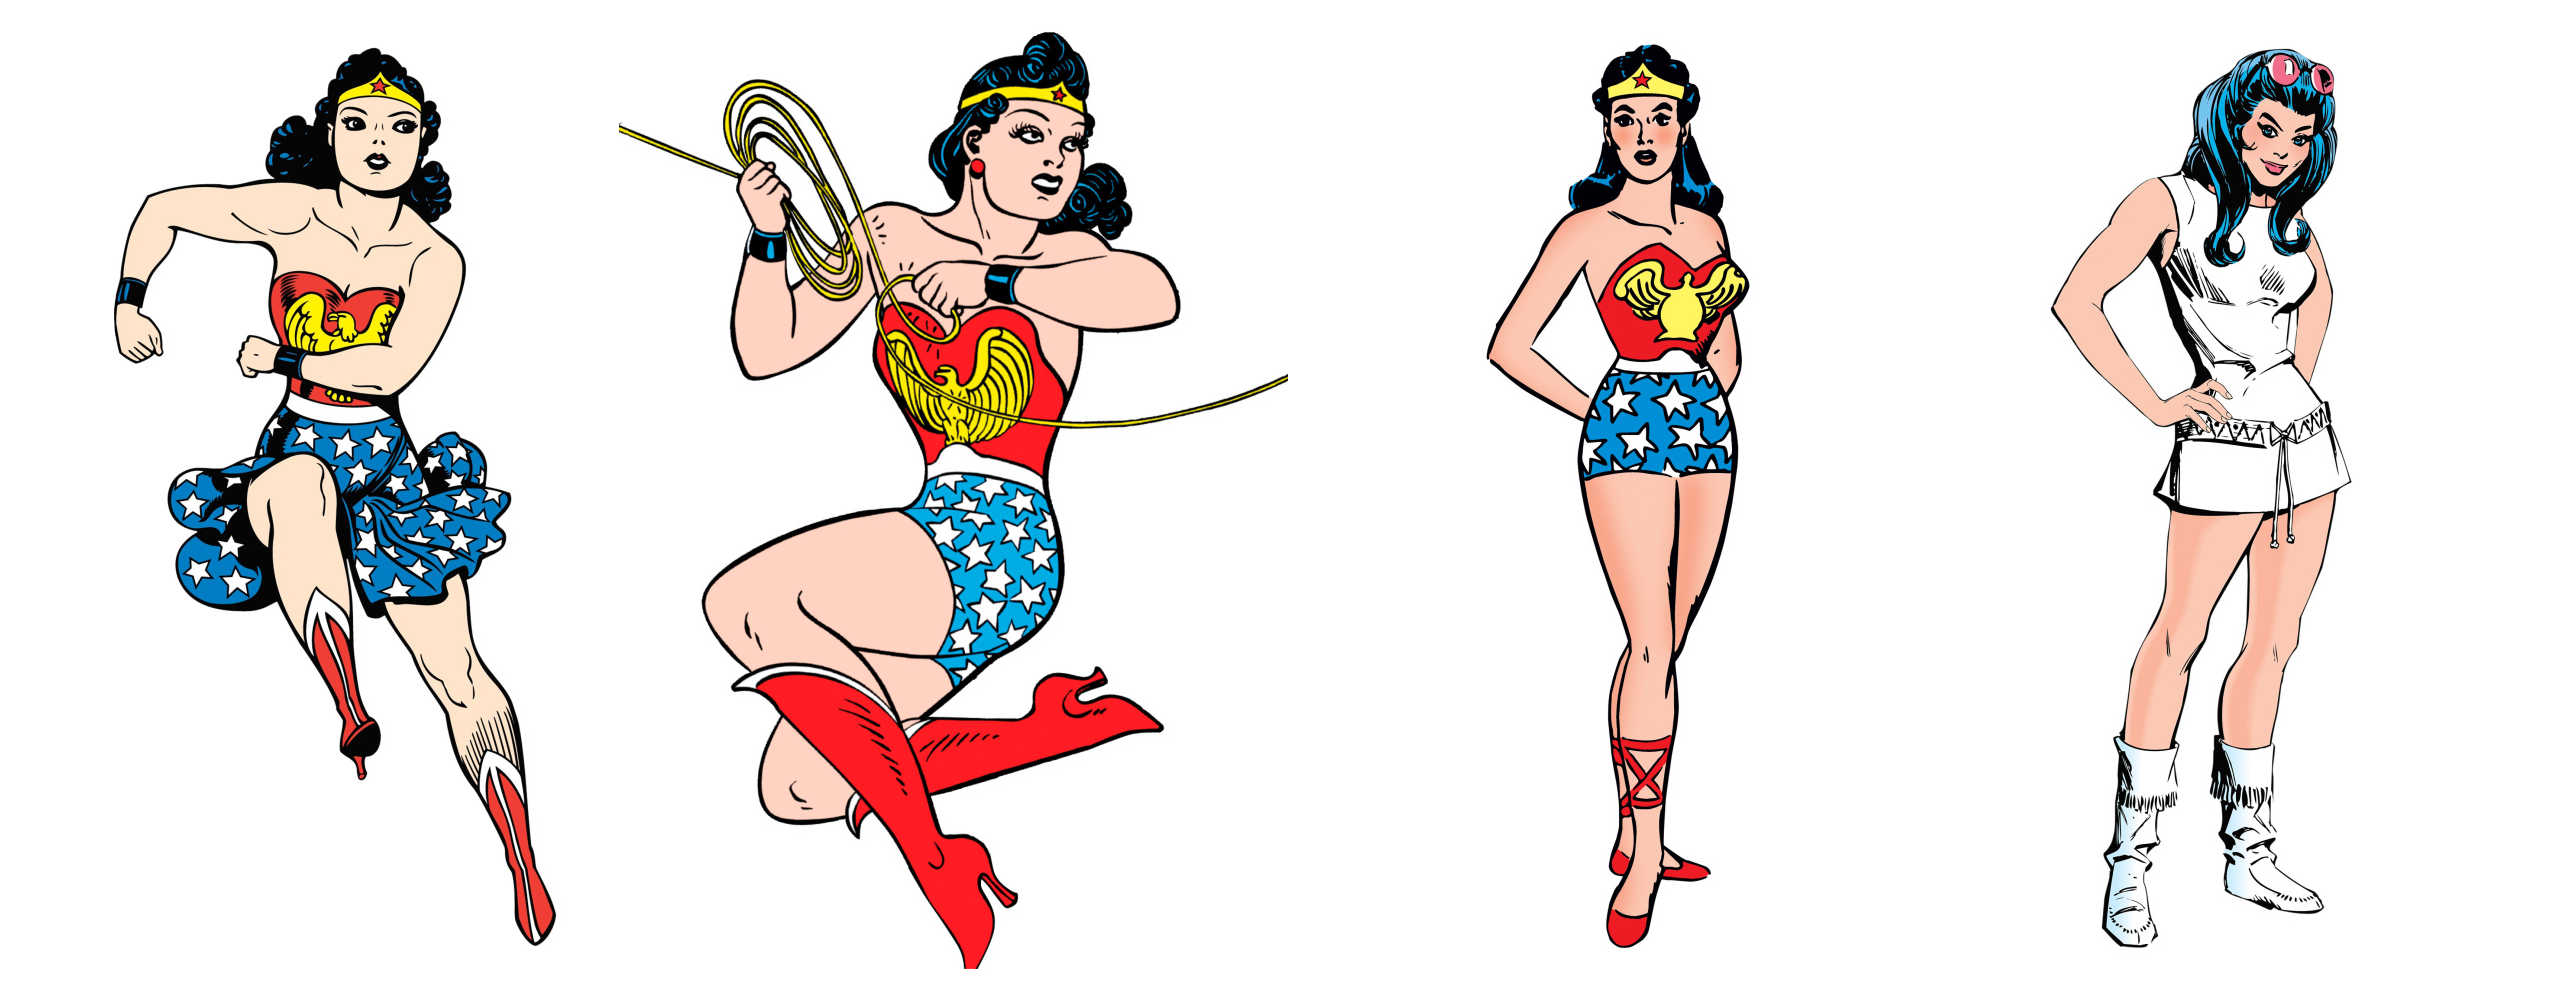 wonder woman evolution comic1